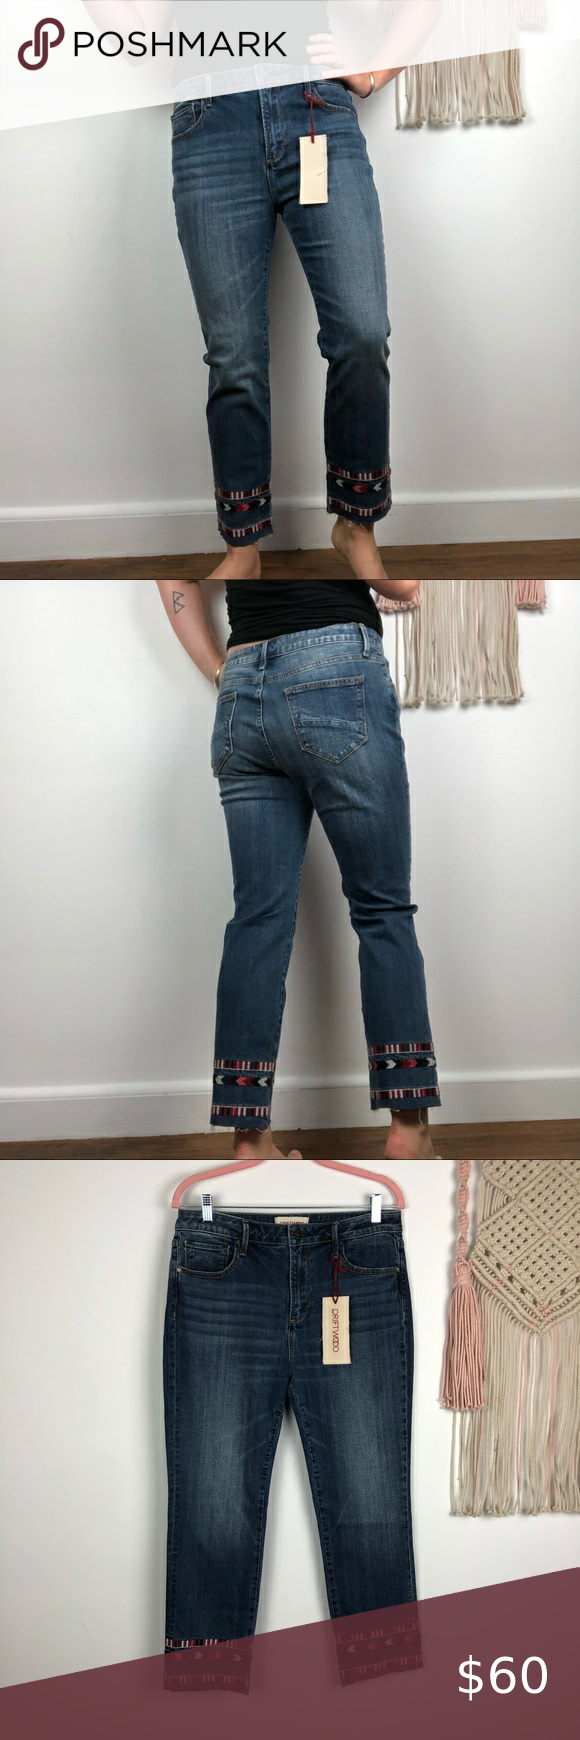 Driftwood Nwt Embroidered Hem Cropped Denim Sz 30 Driftwood High Waisted Jeans Size 30 Embroidered Embellis Fashion Jeans Outfit Cropped Denim Clothes Design